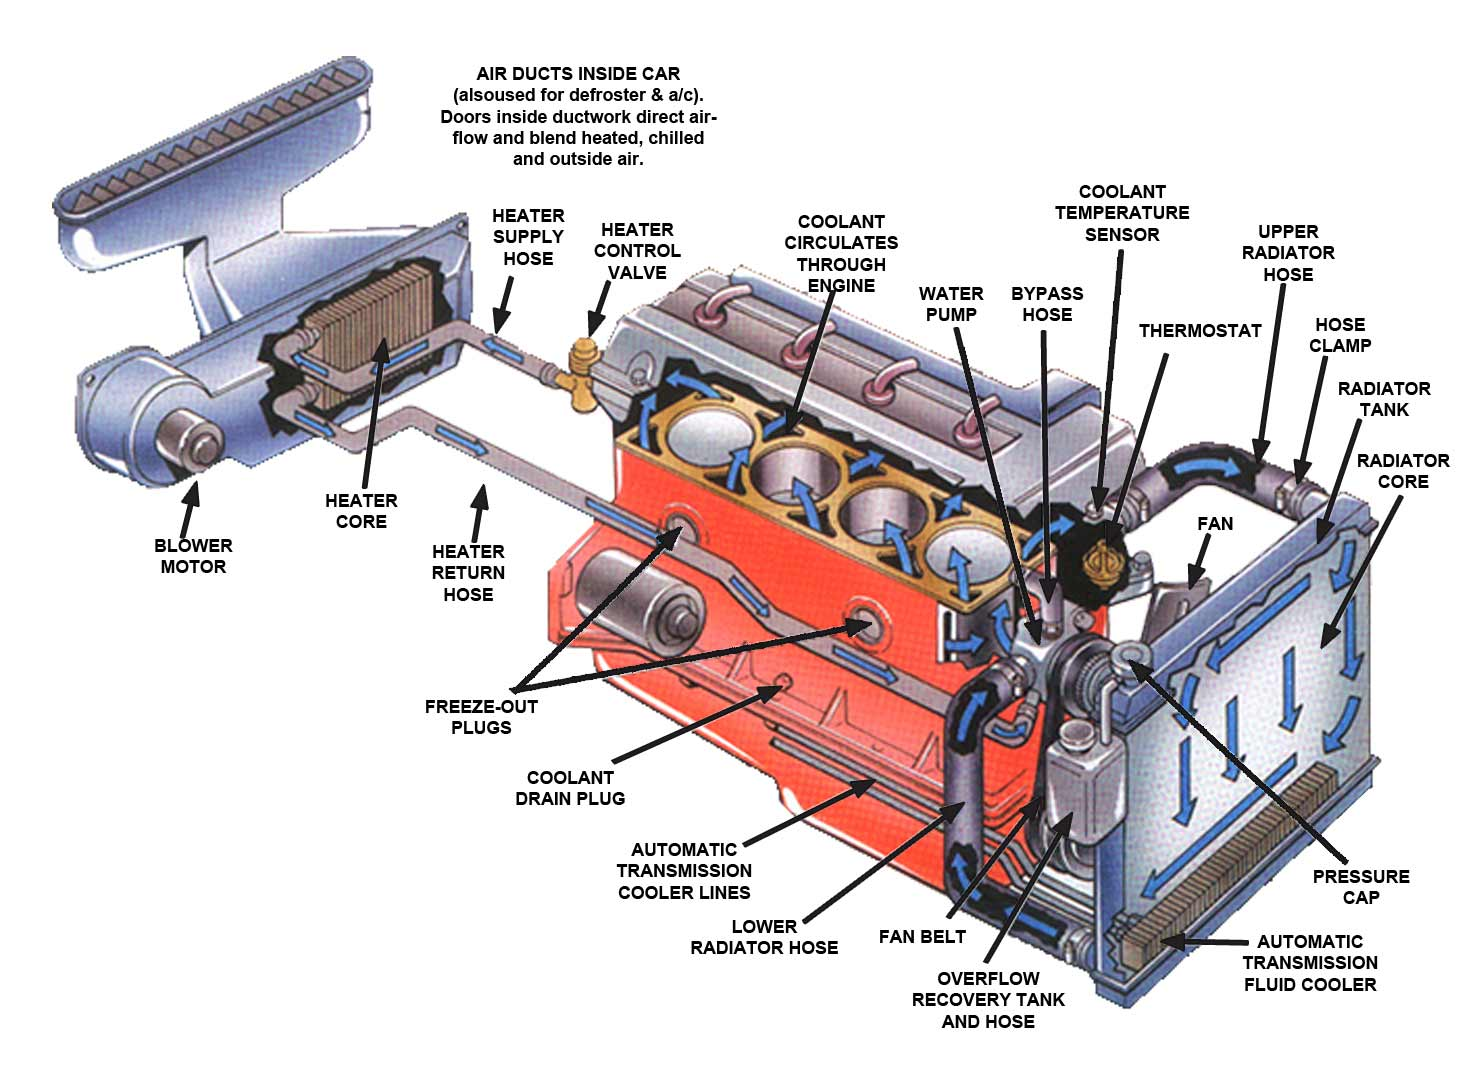 hight resolution of radiator fan repair and replacement in houston lucas auto care car engine diagram